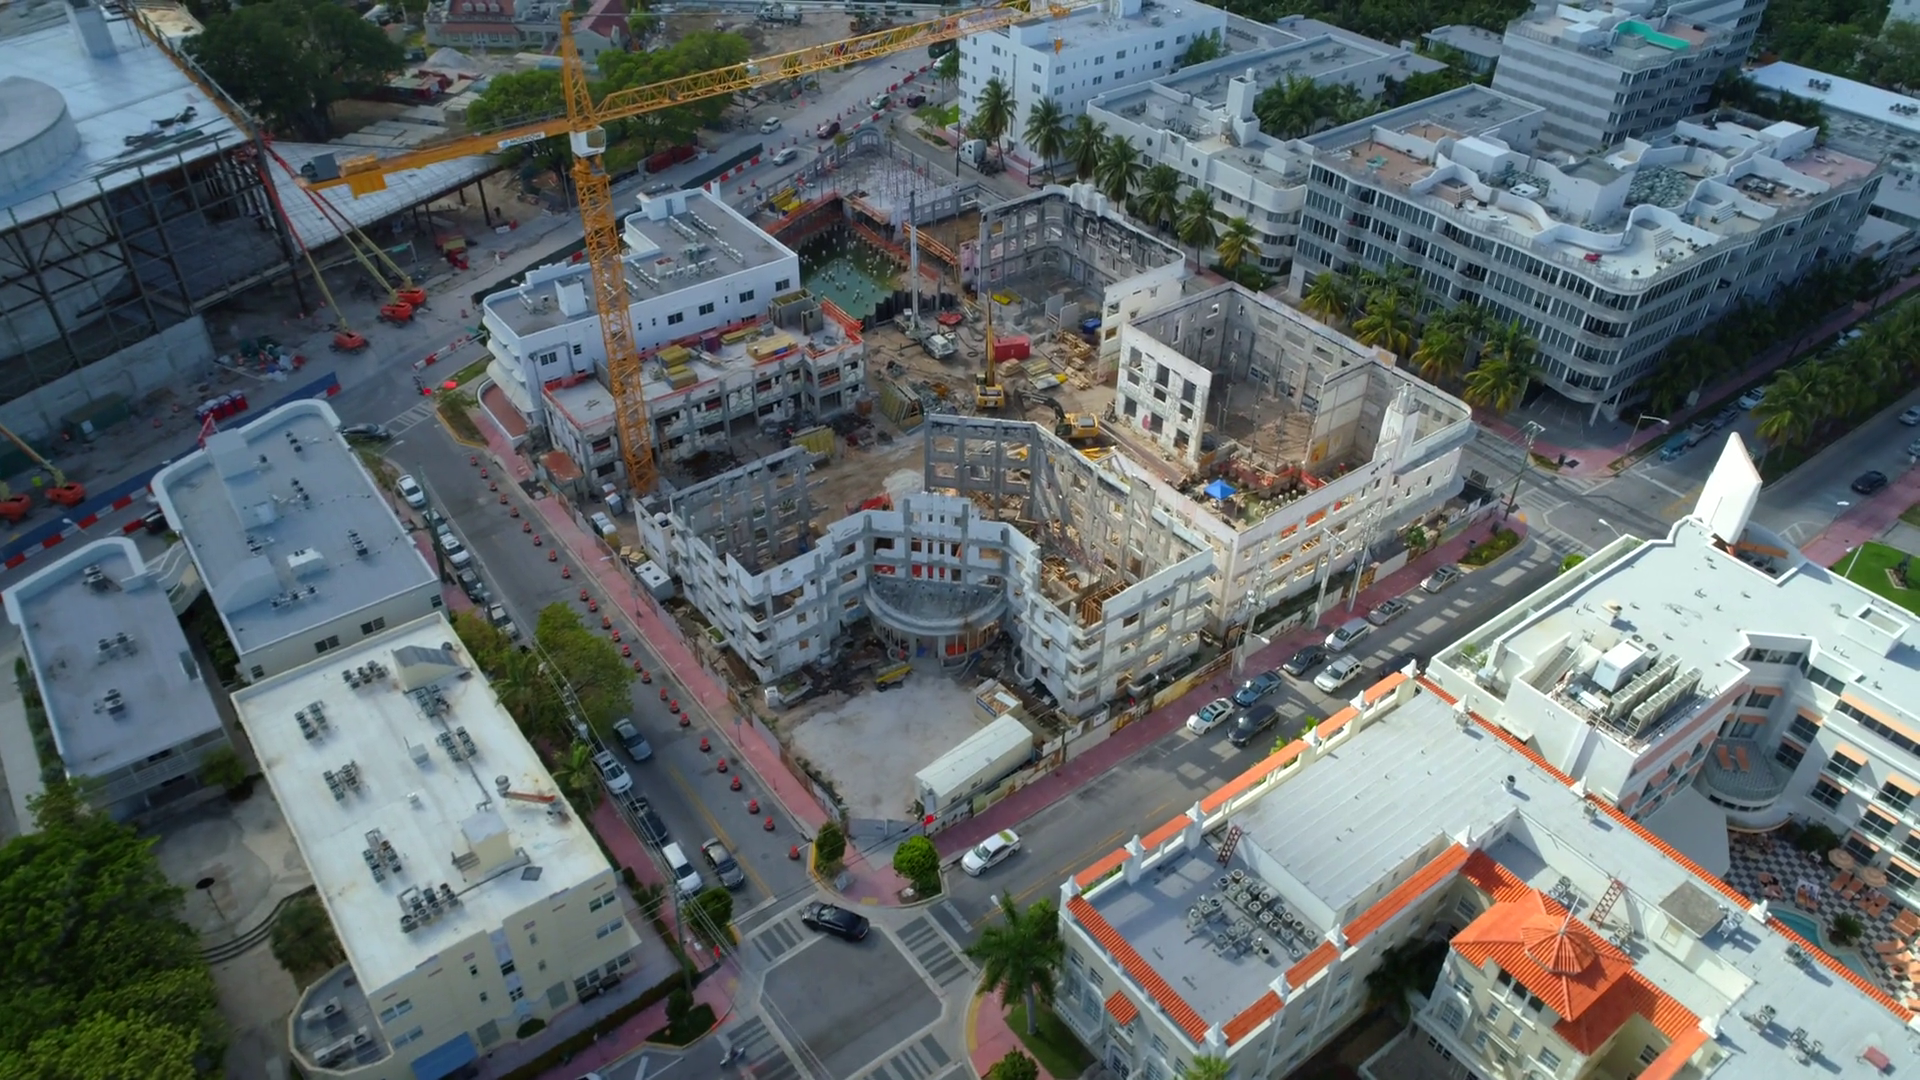 videoblocks-aerial-construction-sites-miami-beach-4k-60p_bm4pn1zbw_thumbnail-full01.png